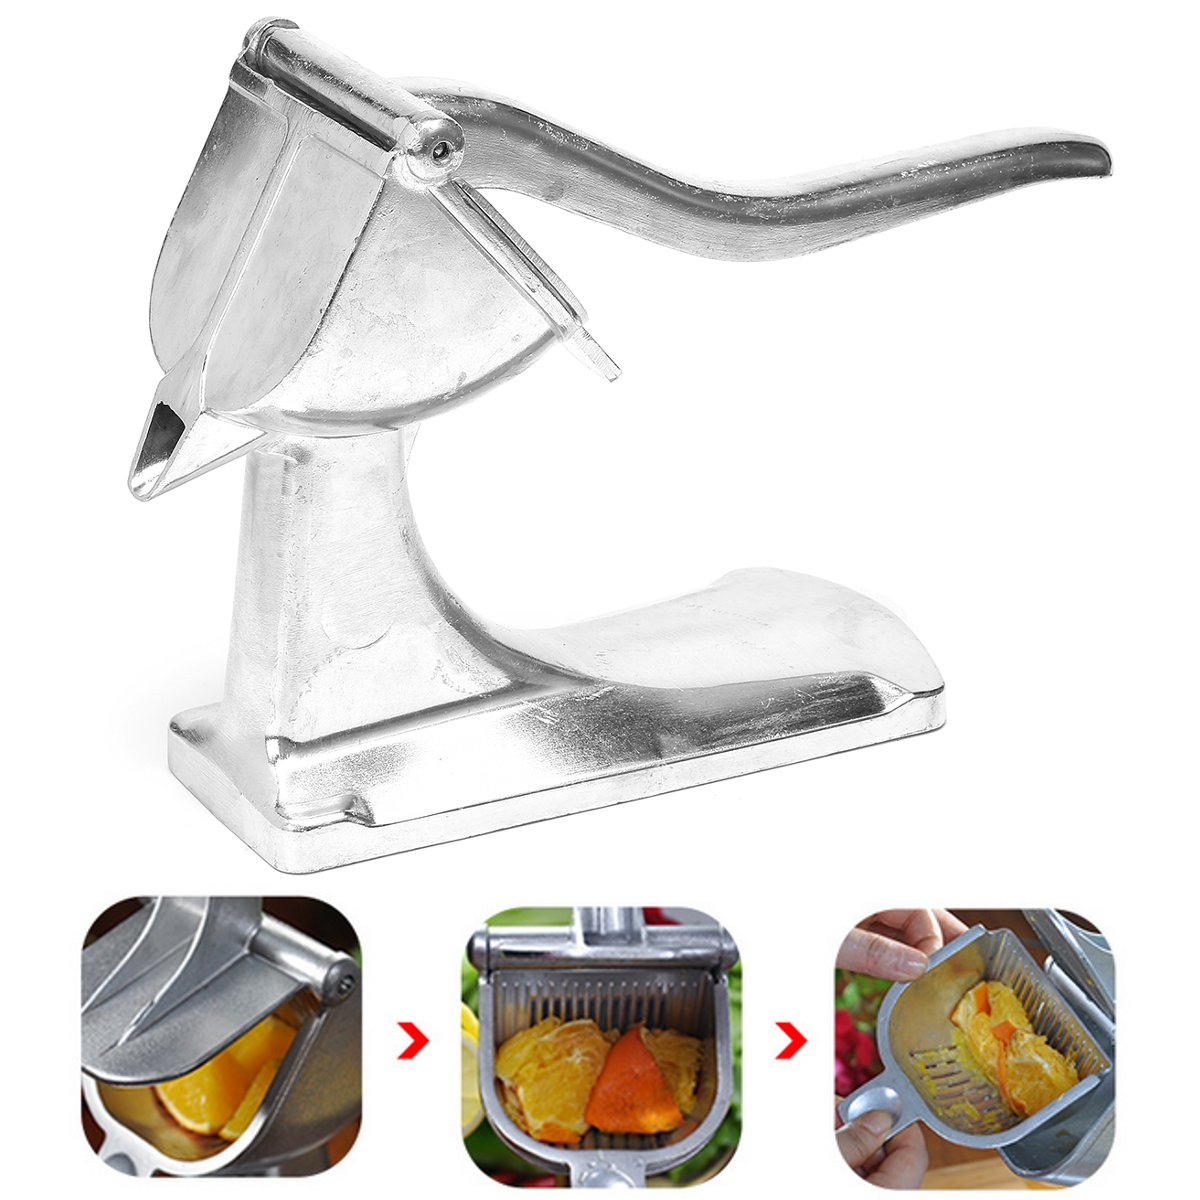 Heavy Duty Mini Fruit Press Household Press Lemon Orange Lime Citrus Fresh Drink Kitchen Tool Home Squeezer Machine